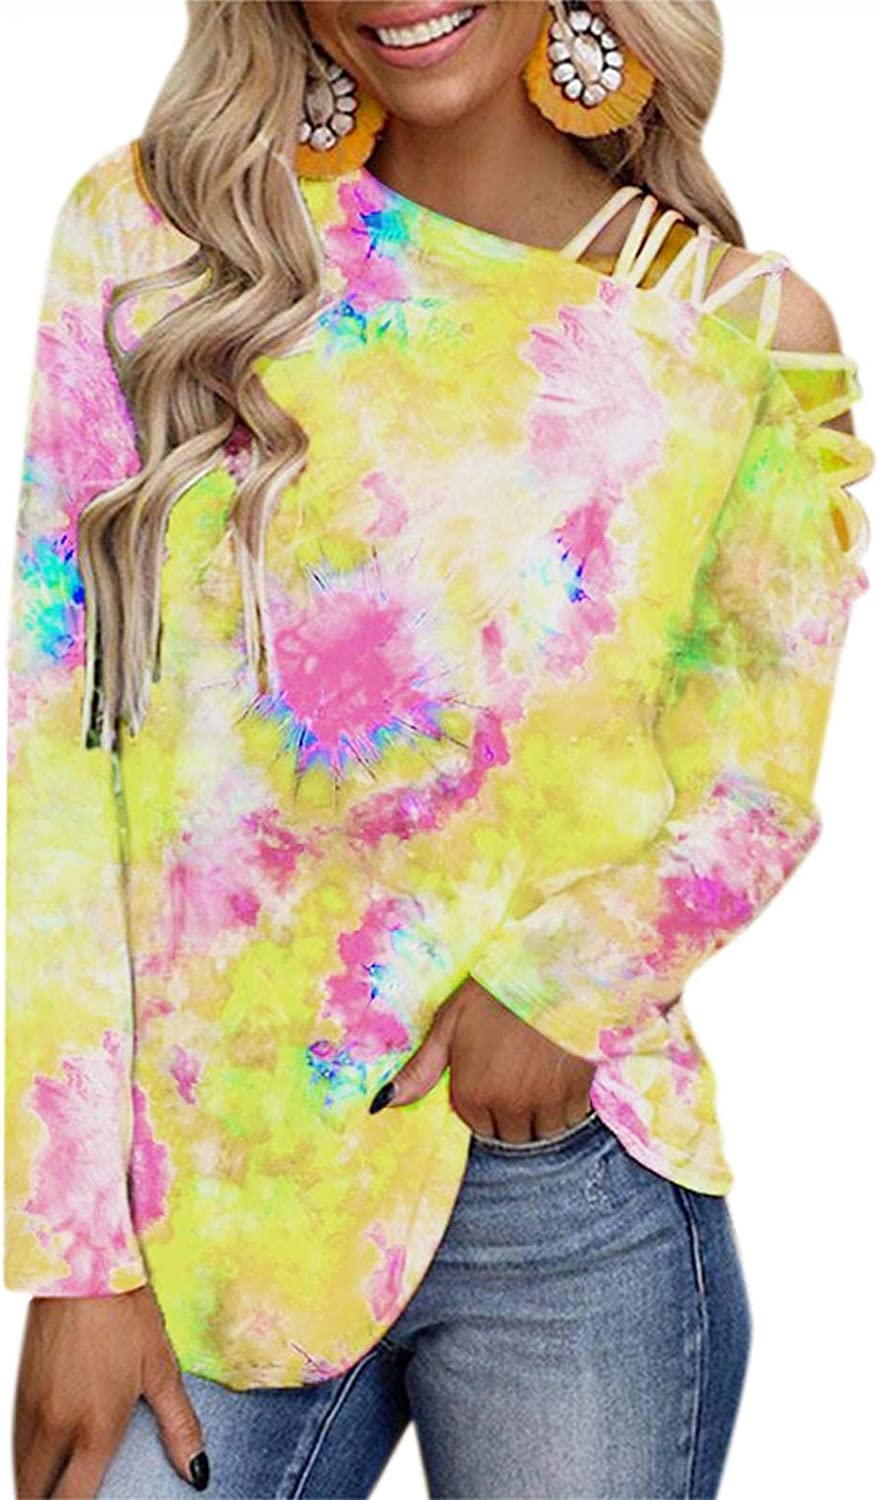 Nyybw Women's Tie Dye Long Sleeves T Shirt Loose Casual Blouses Sexy Cold Shoulder Strappy Tunic Tops Autumn Pullovers